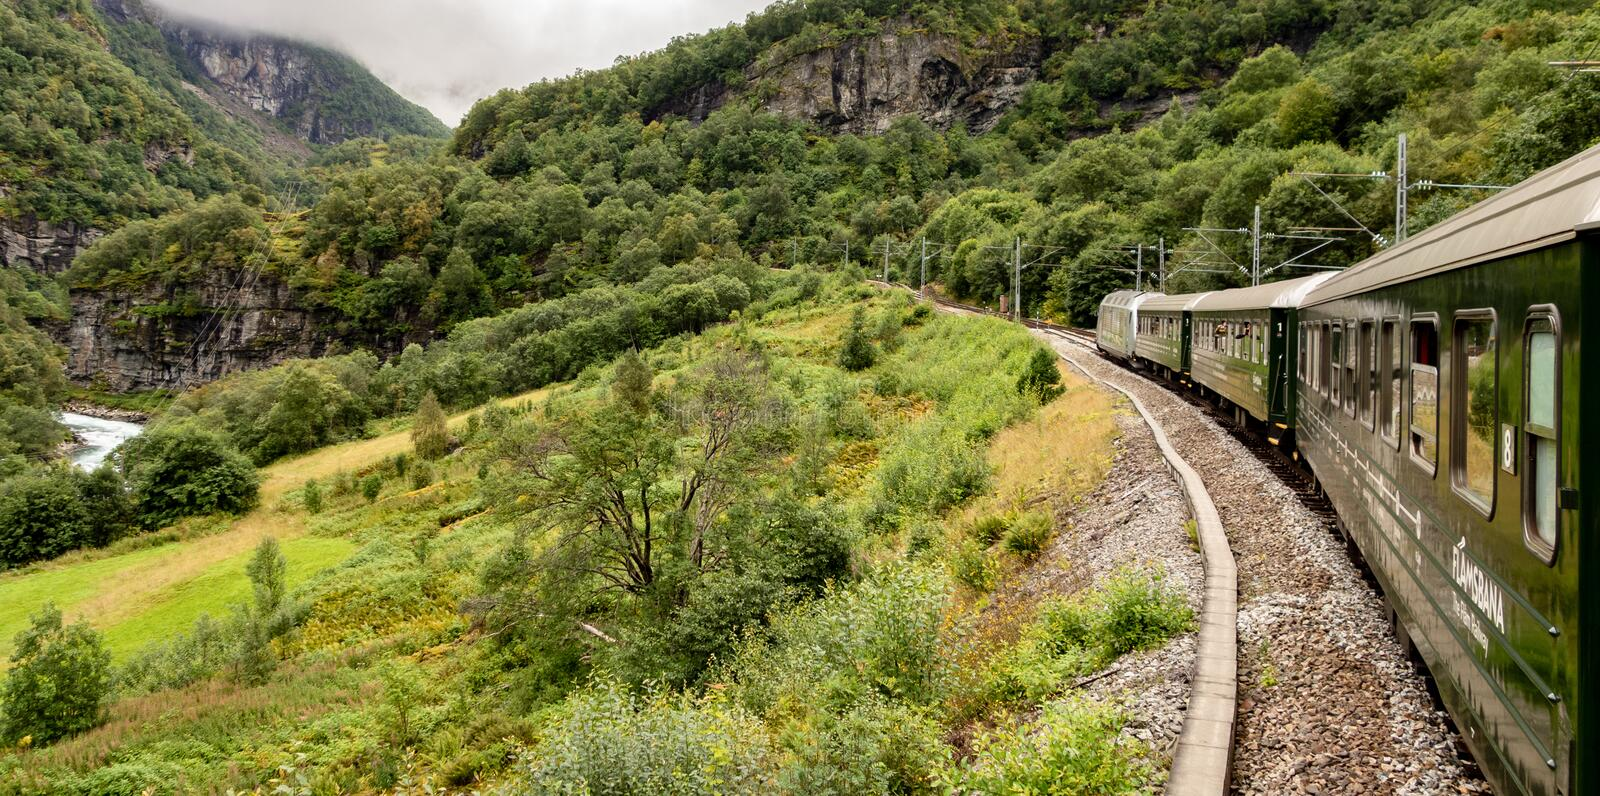 Flamsbana railroad track and train in Norway connecting Flam city and Myrdal station royalty free stock image